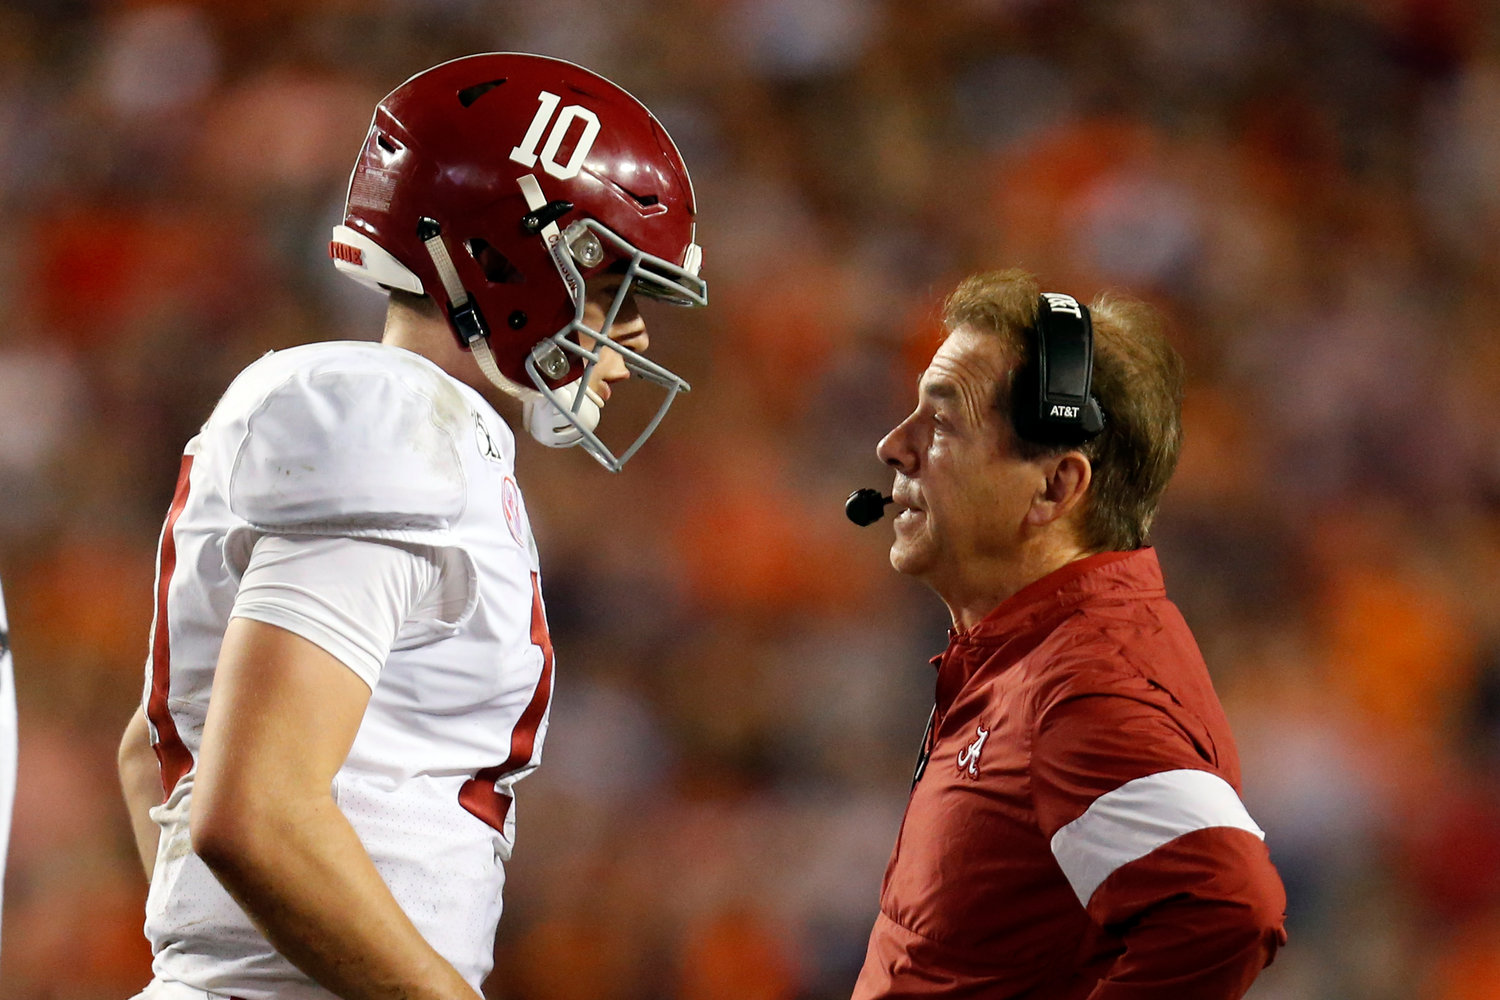 Alabama quarterback Mac Jones (10) talks with head coach Nick Saban during the second half of an NCAA college football game against Auburn, Saturday, Nov. 30, 2019, in Auburn, Ala. Auburn won 48-45. (AP Photo/Butch Dill)